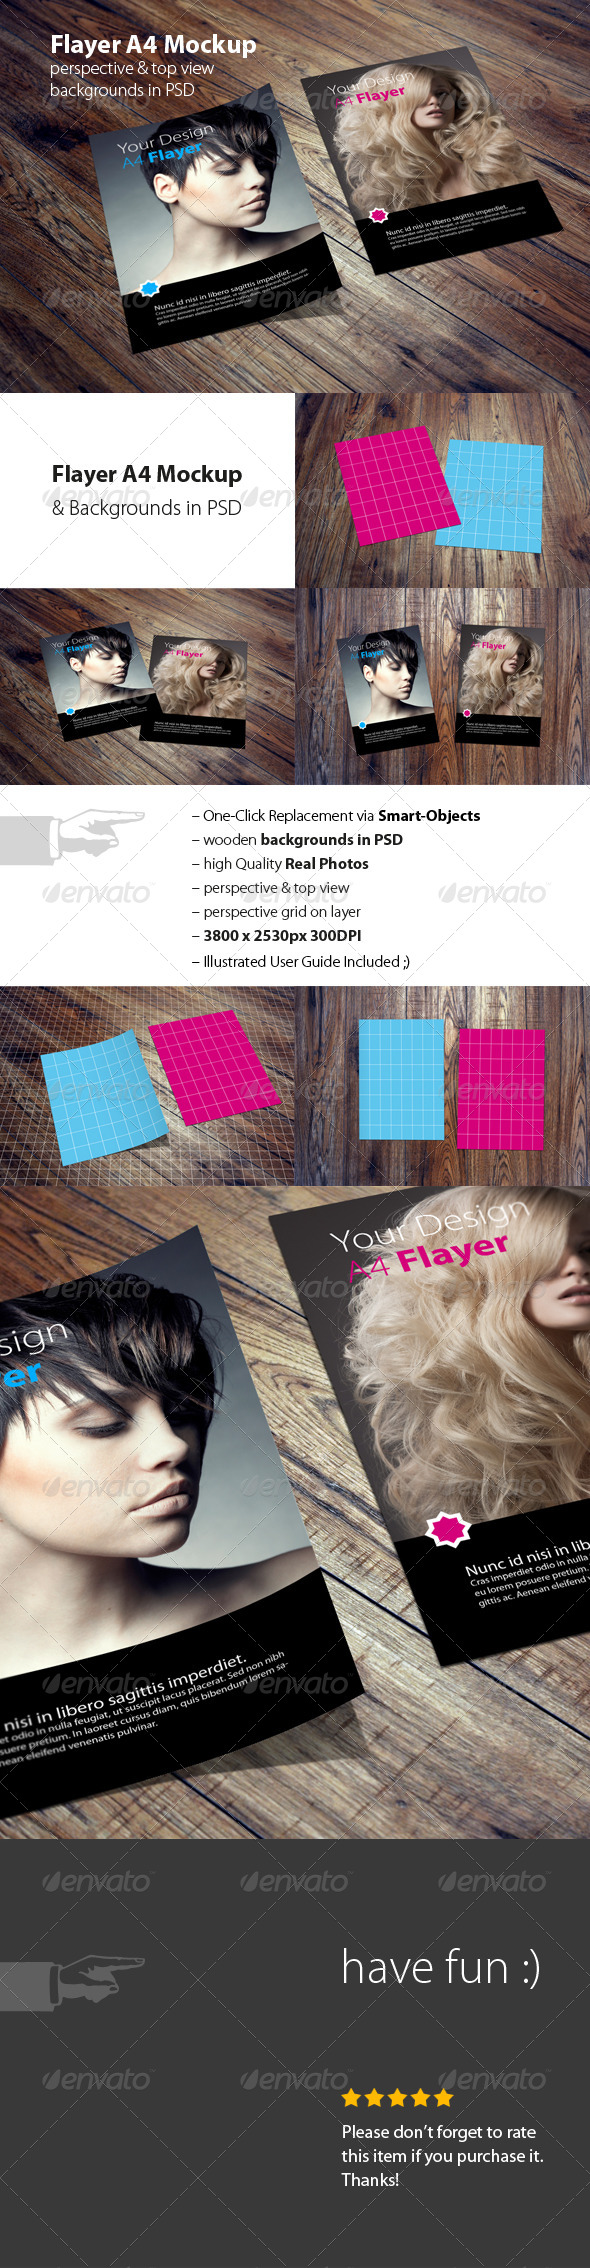 GraphicRiver Flayer Poster A4 Mockup in PSD 8154852